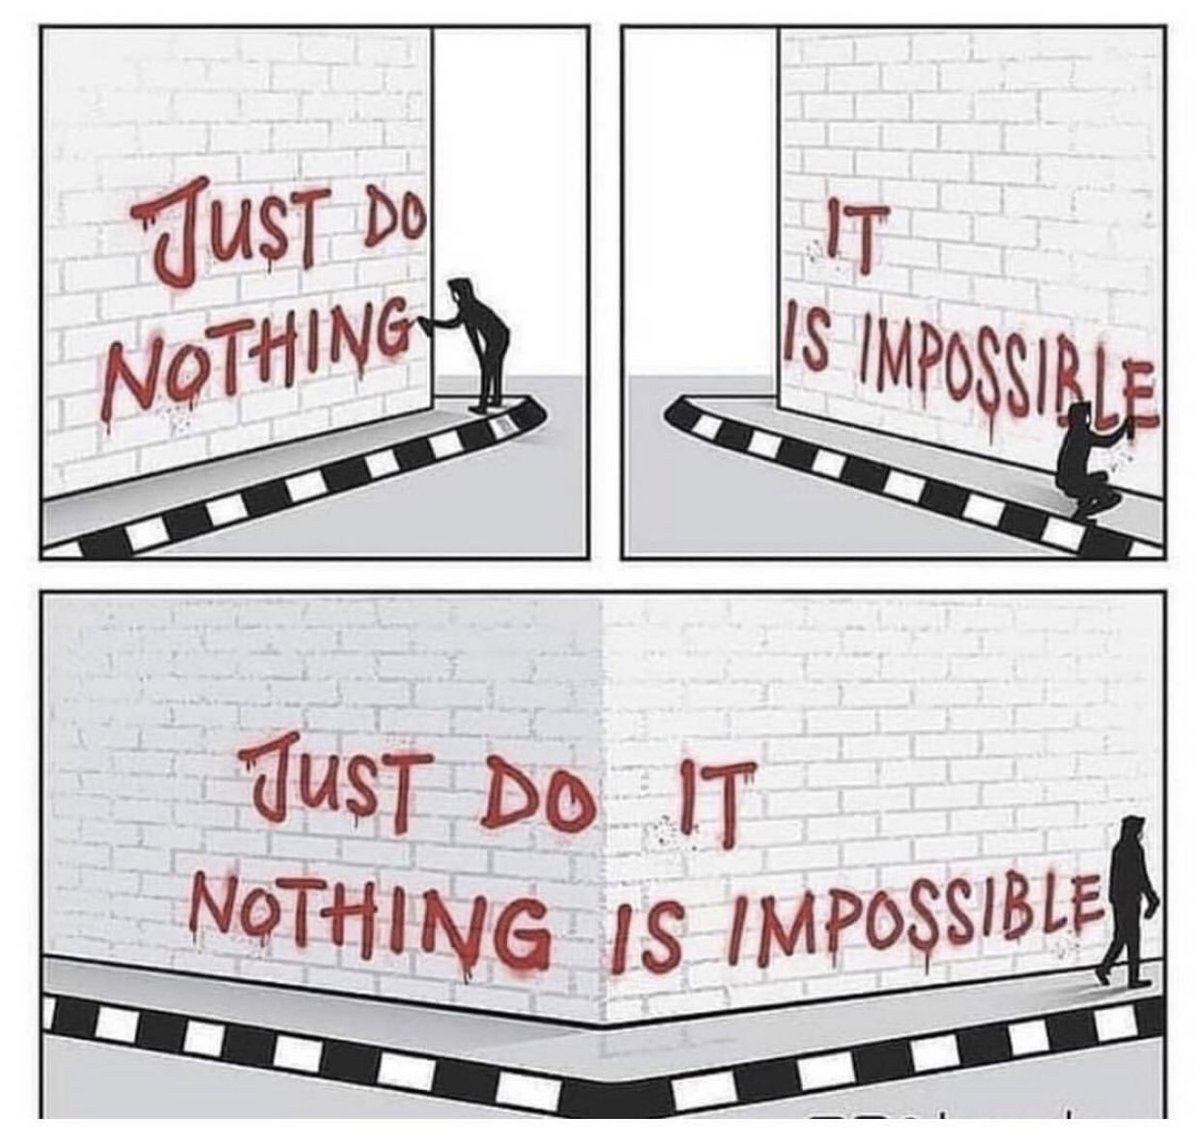 Nothing is impossible! #RiseAndGrind <br>http://pic.twitter.com/SK5yyDCqZZ